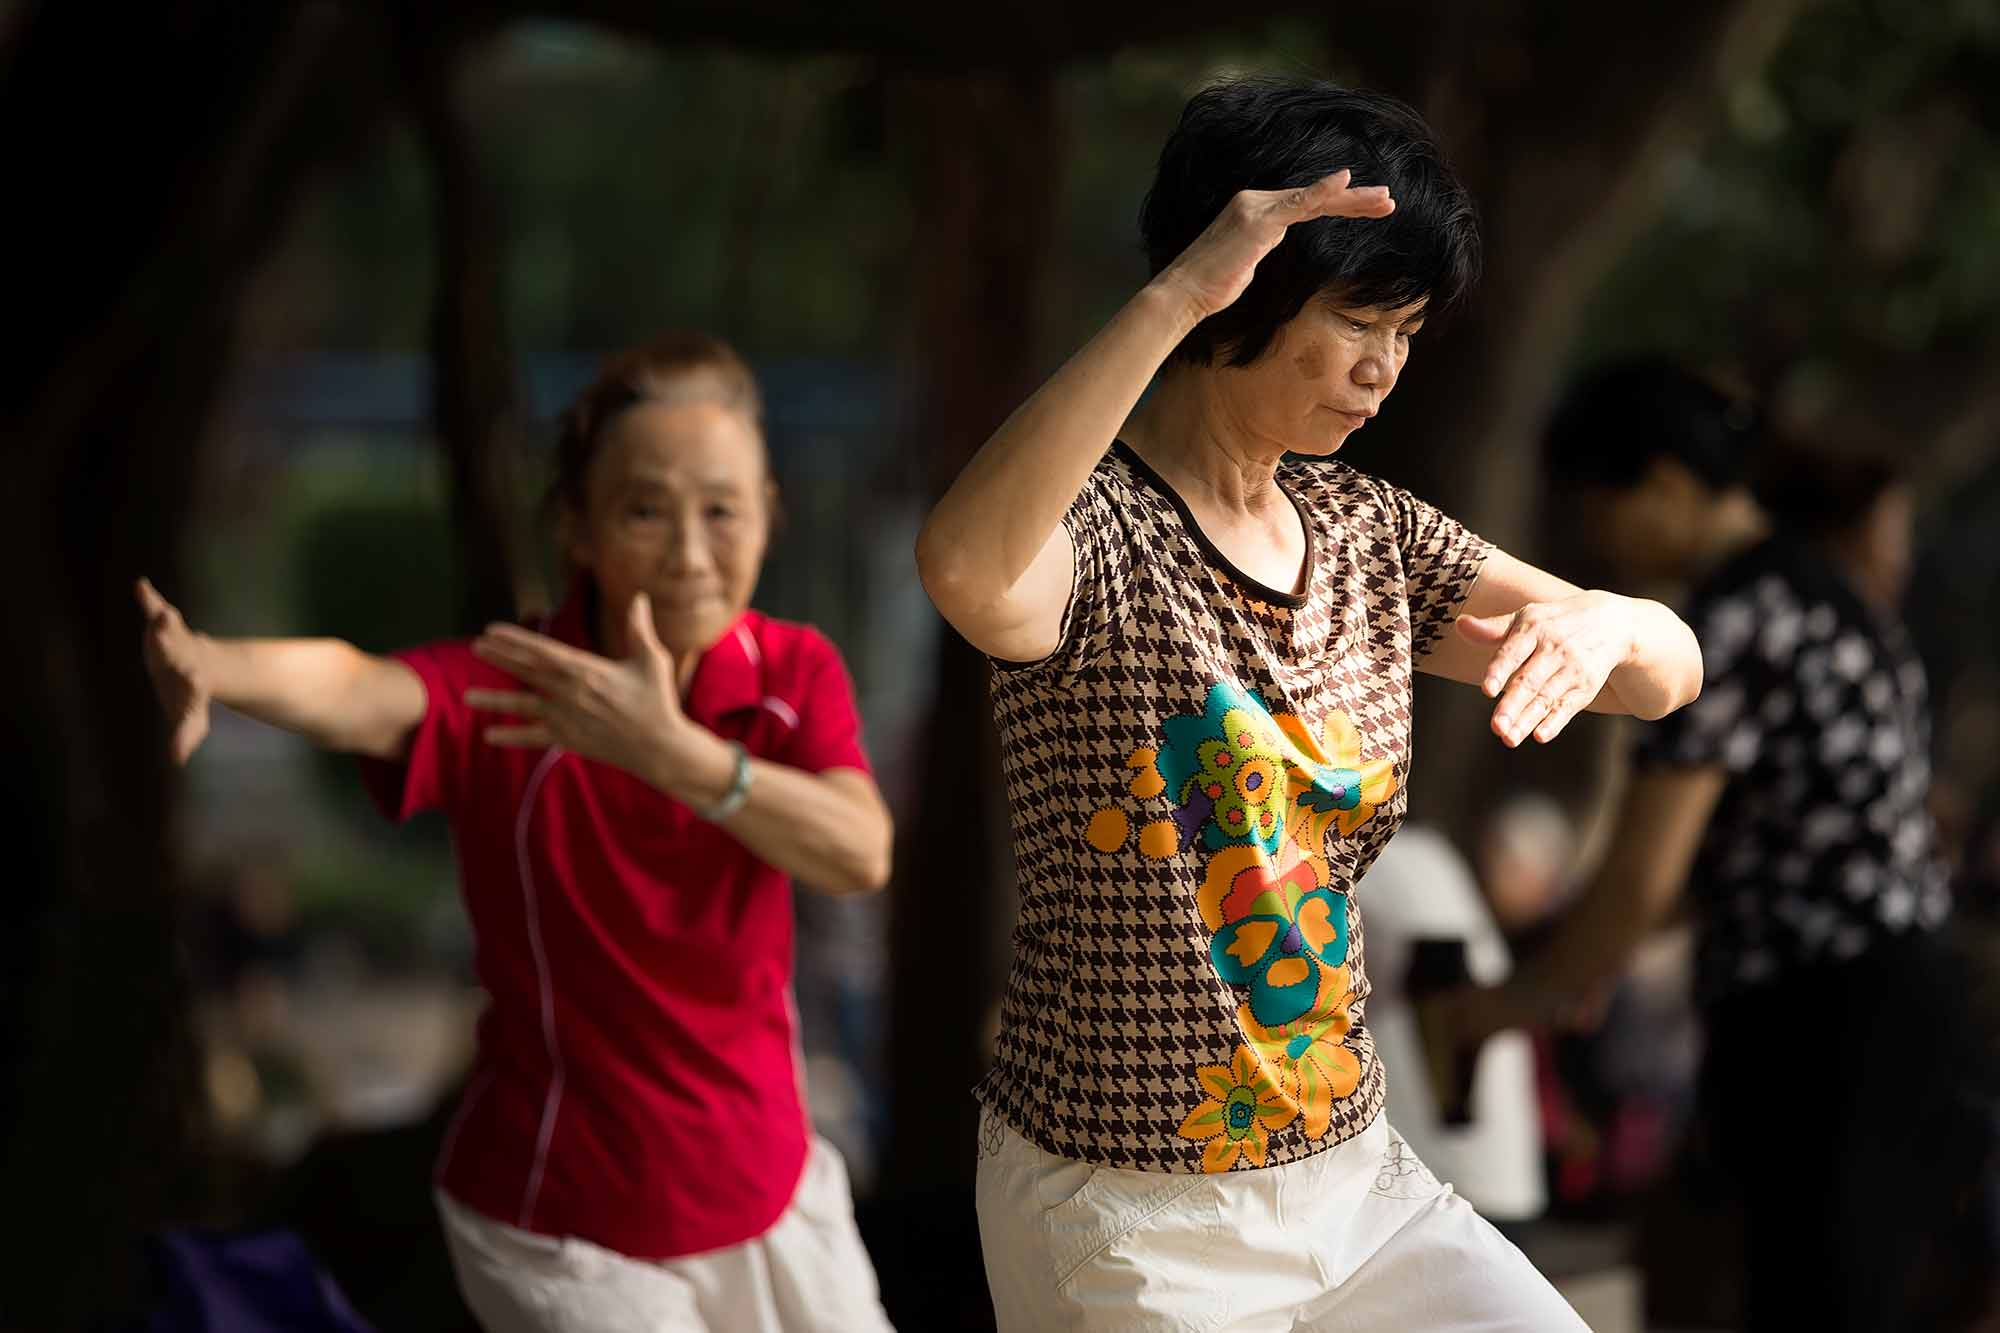 Doing some Tai Chi at Liuhuahu park in Guangzhou. © Ulli Maier & Nisa Maier